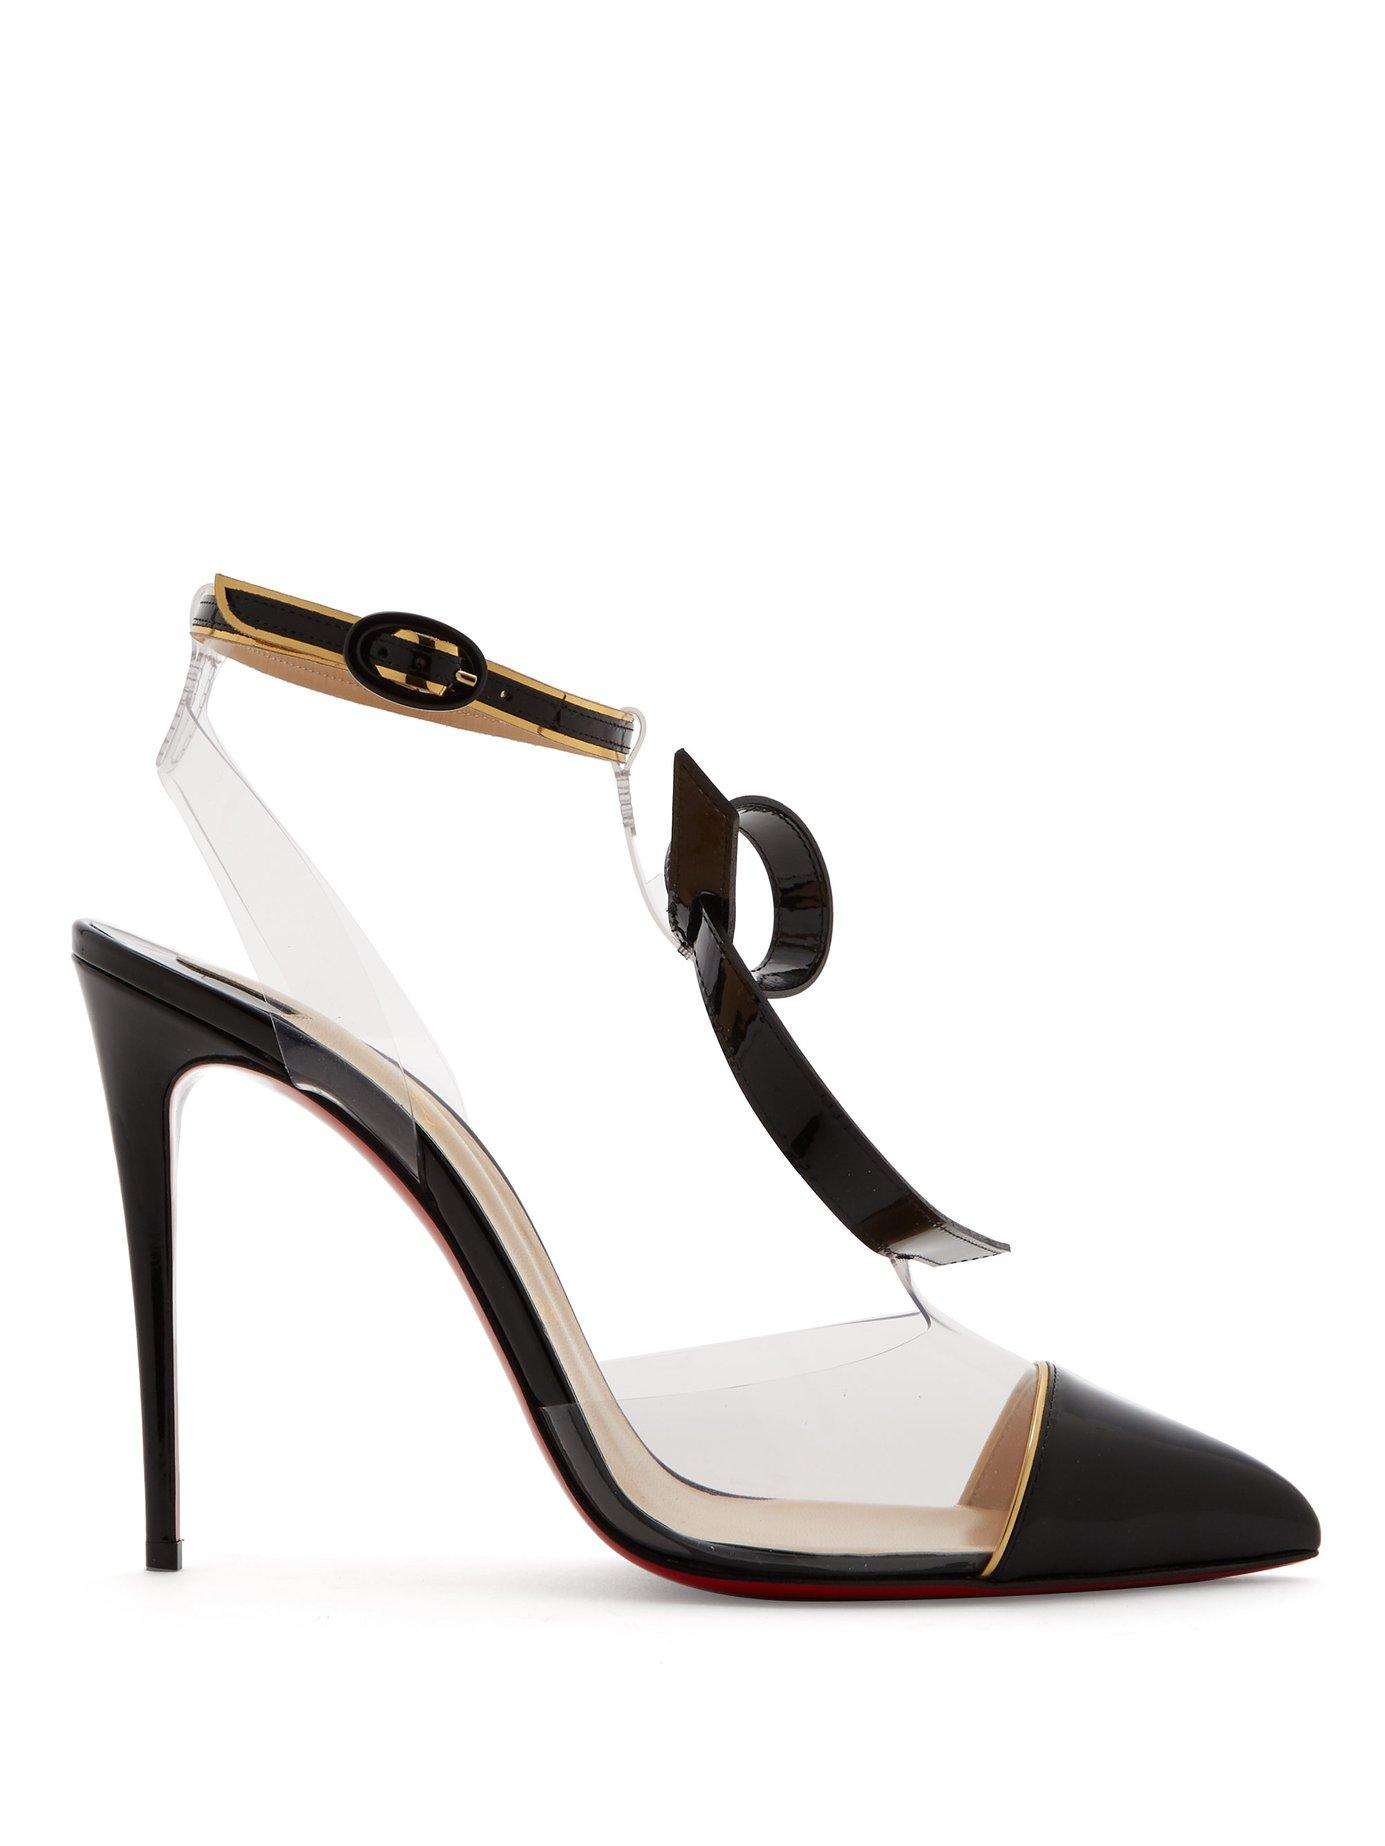 0ea1b471eb1 Lyst - Christian Louboutin Alta Firma Leather And Perspex Pumps in Black